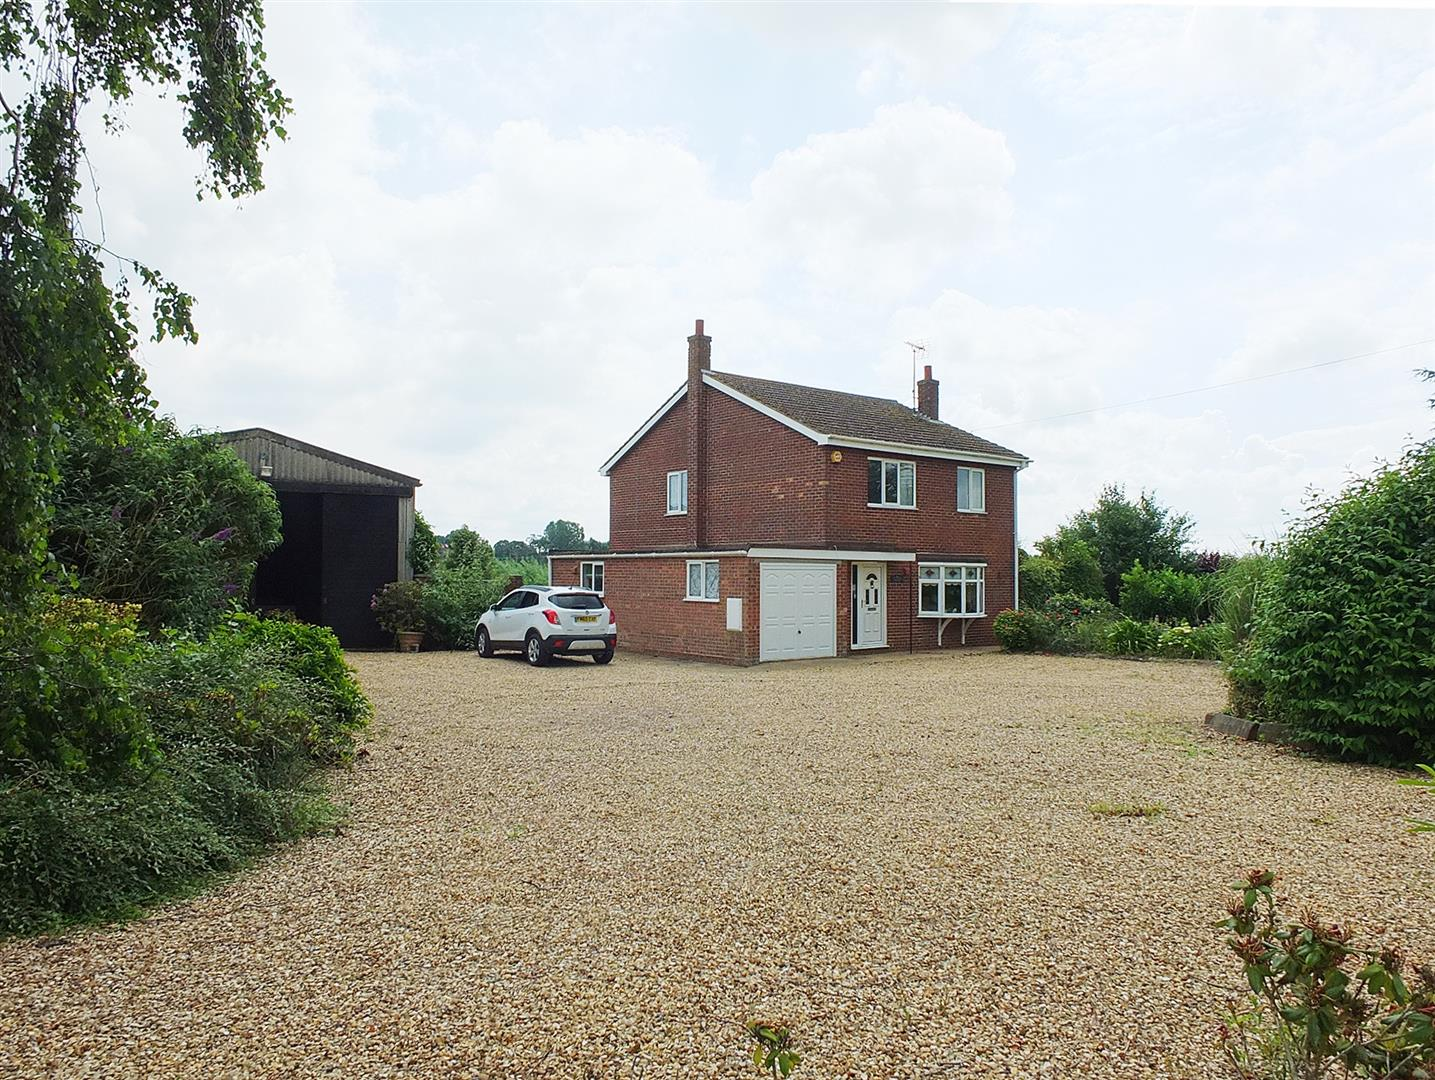 3 bed detached house for sale in Lutton Gowts, Lutton Spalding, PE12